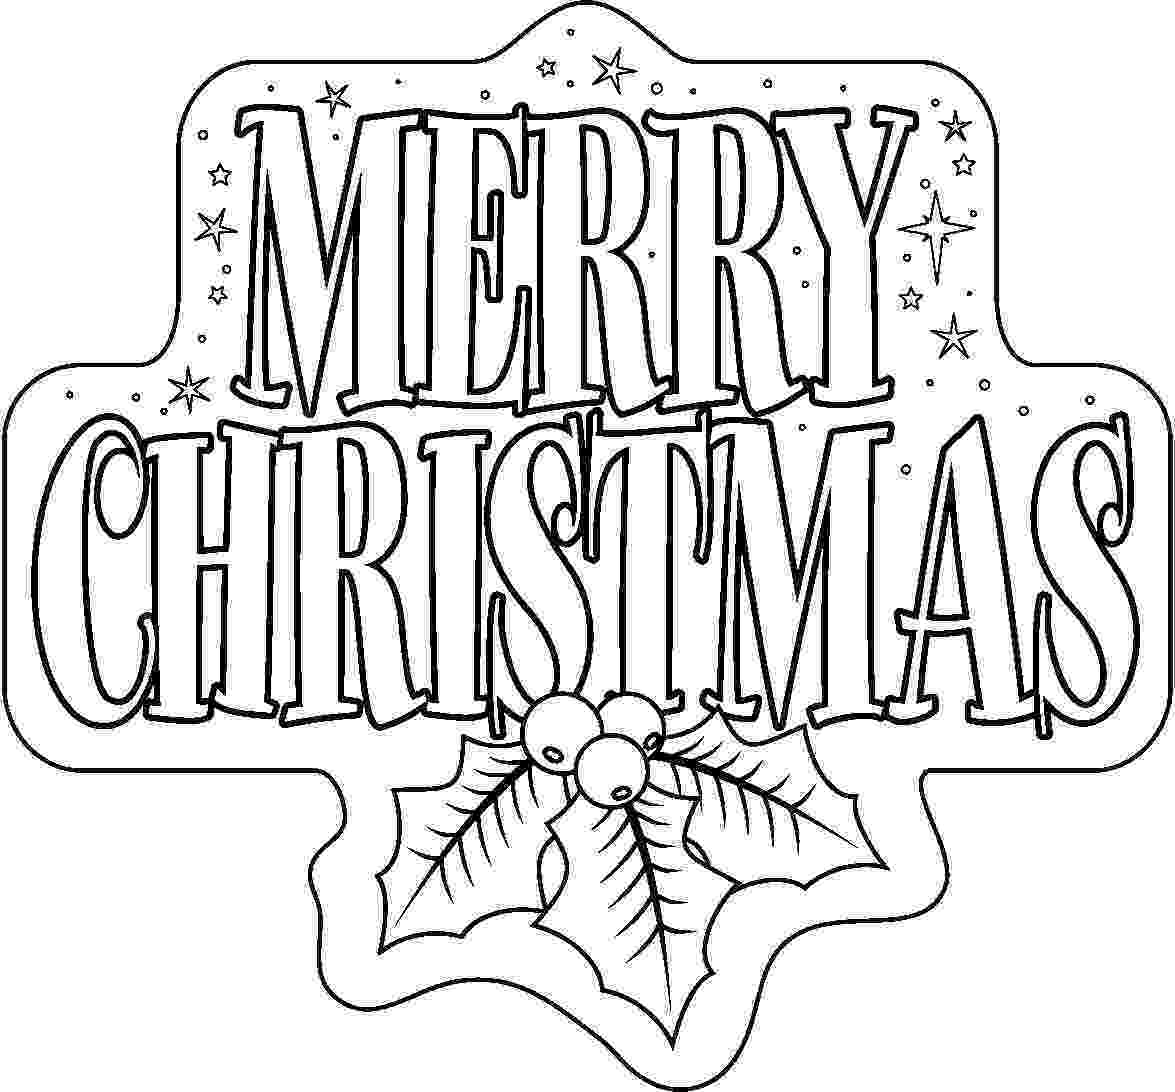 merry christmas coloring sheet coloring pages merry christmas christmas sheet coloring merry